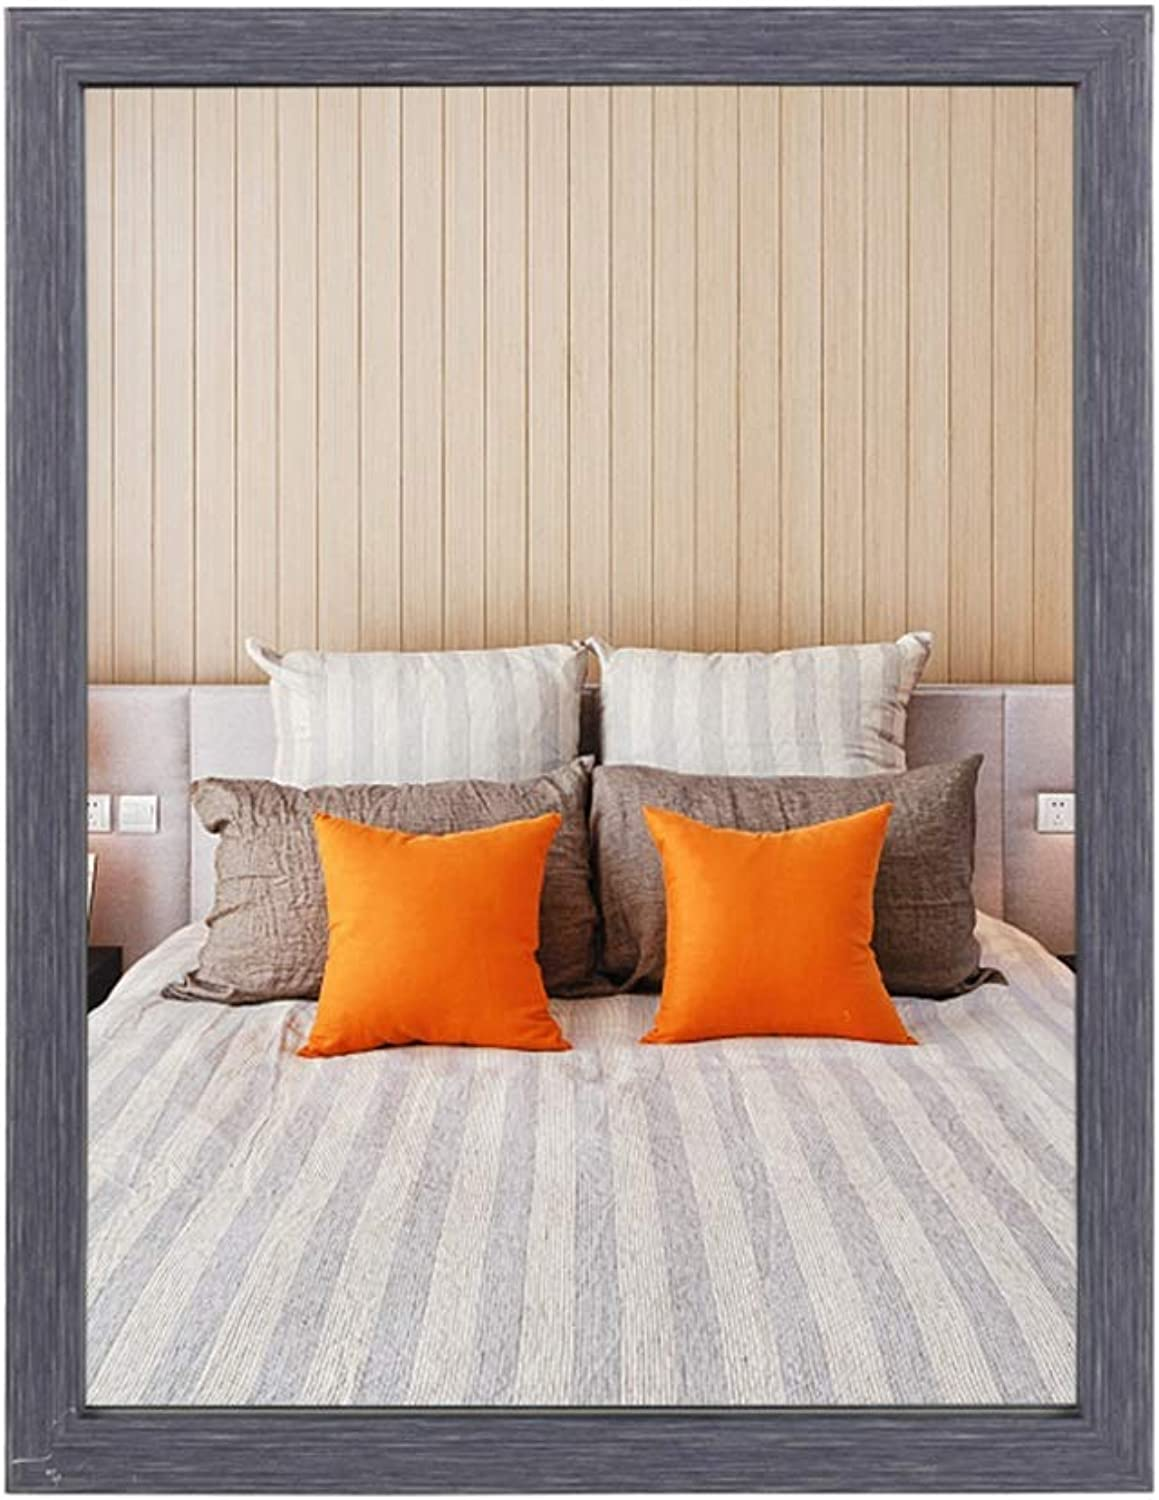 Bathroom Mirror, Frame Wall Mirror Waterproof Home Fireplace Mirror Dressing Table Hook Inssizetion